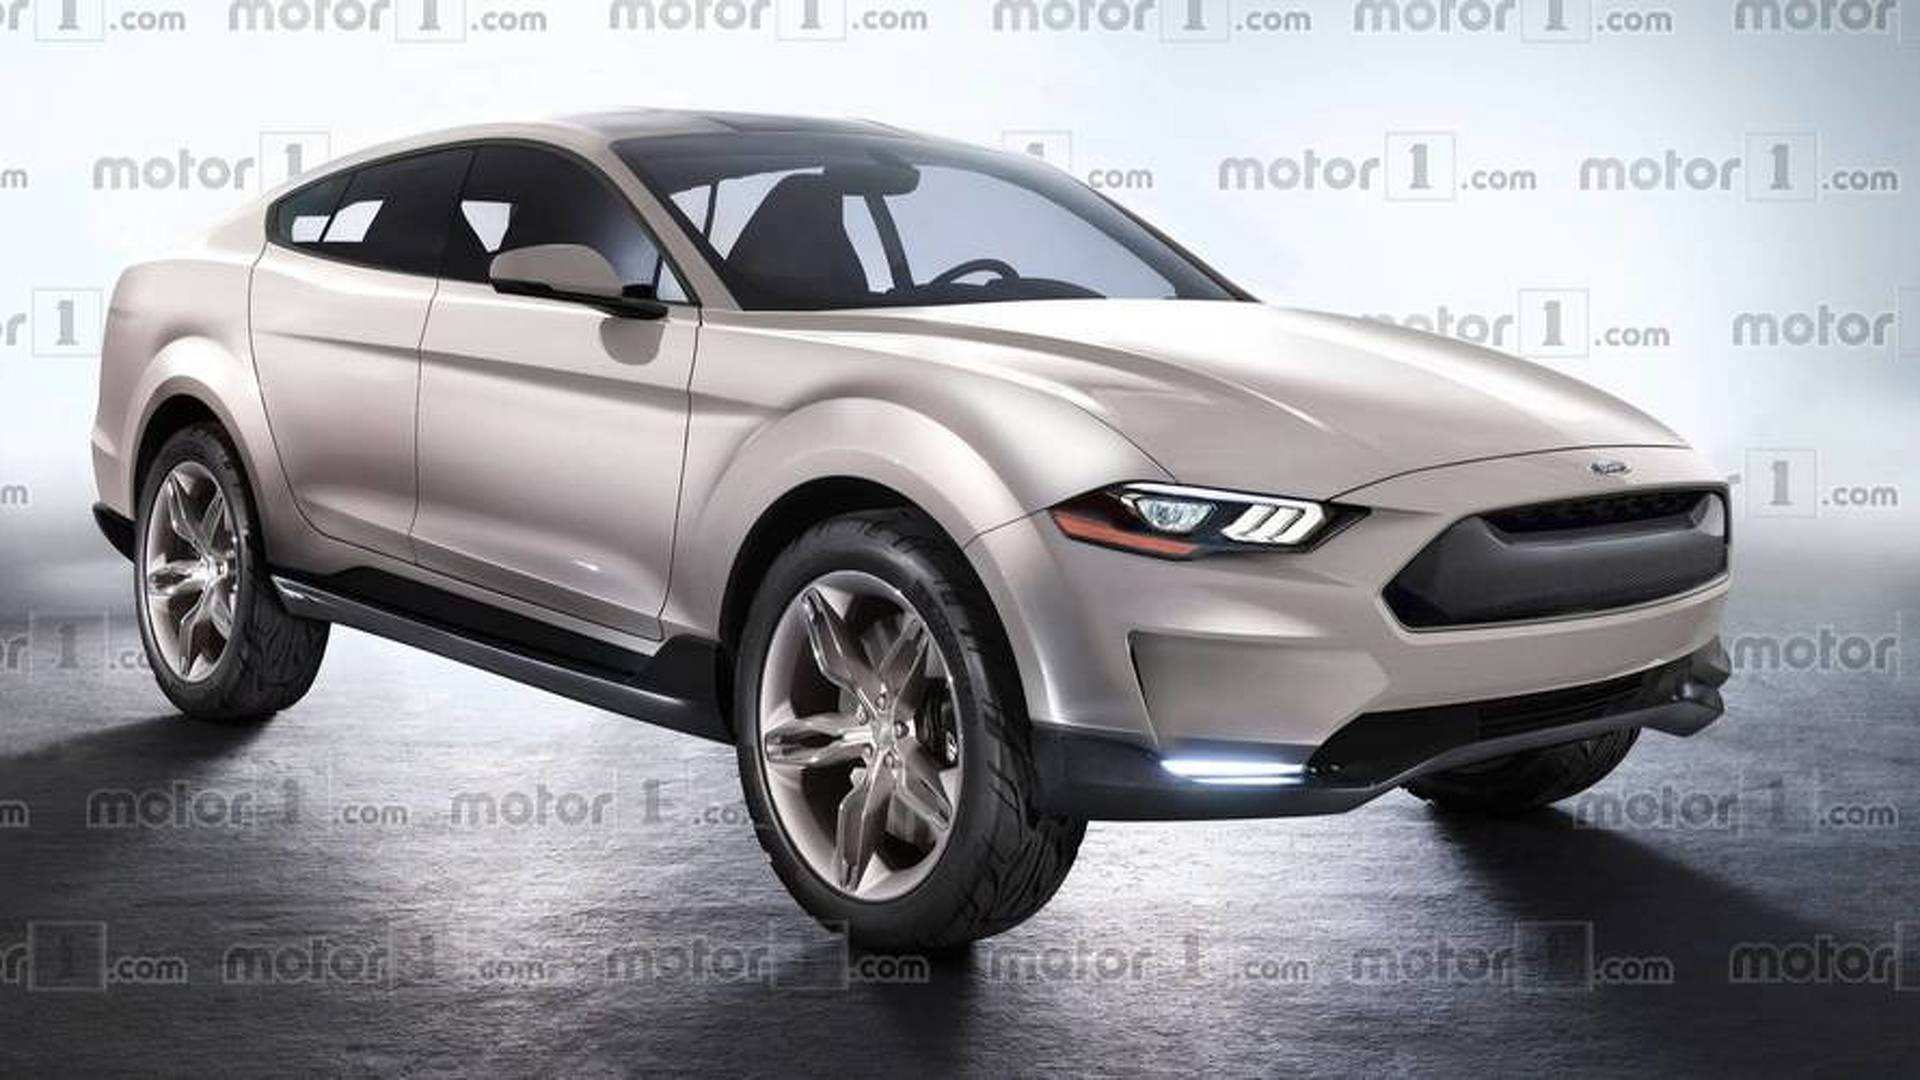 85 The 2020 Ford Mustang Mach 1 Performance for 2020 Ford Mustang Mach 1